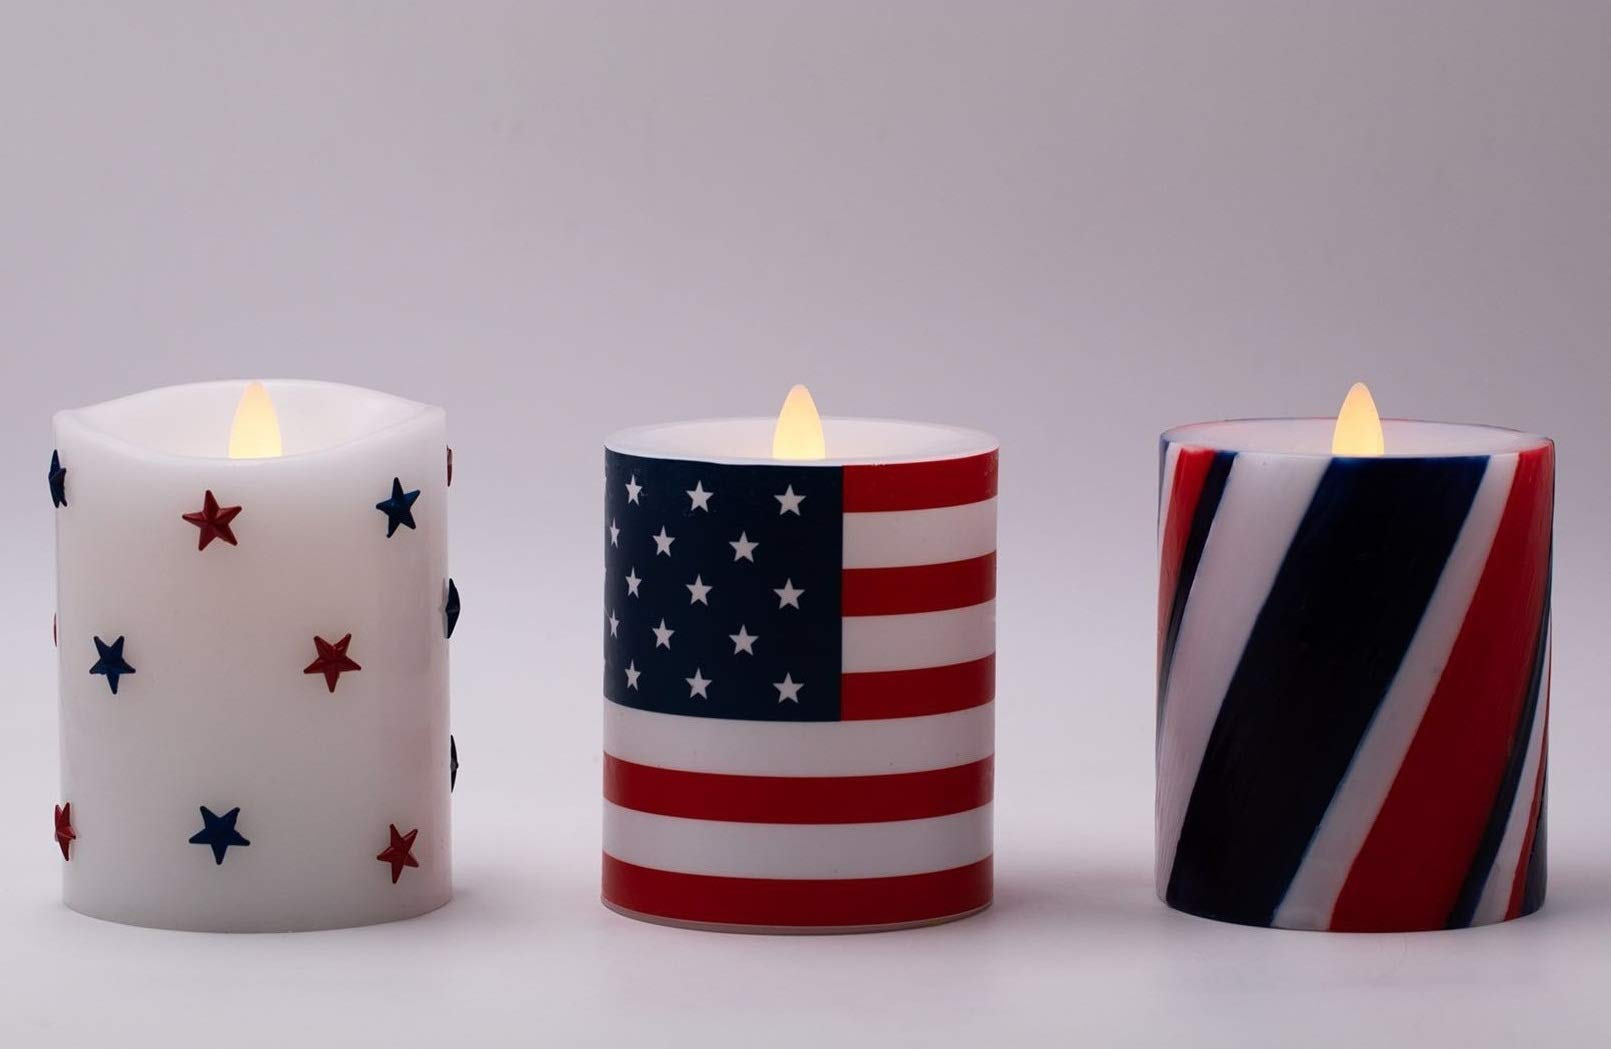 Flameless Candles Set of 3(D 3.5'' x H 5'') Battery Operated American Flag Pillar Candles with Timer and Remote to Buy Separately